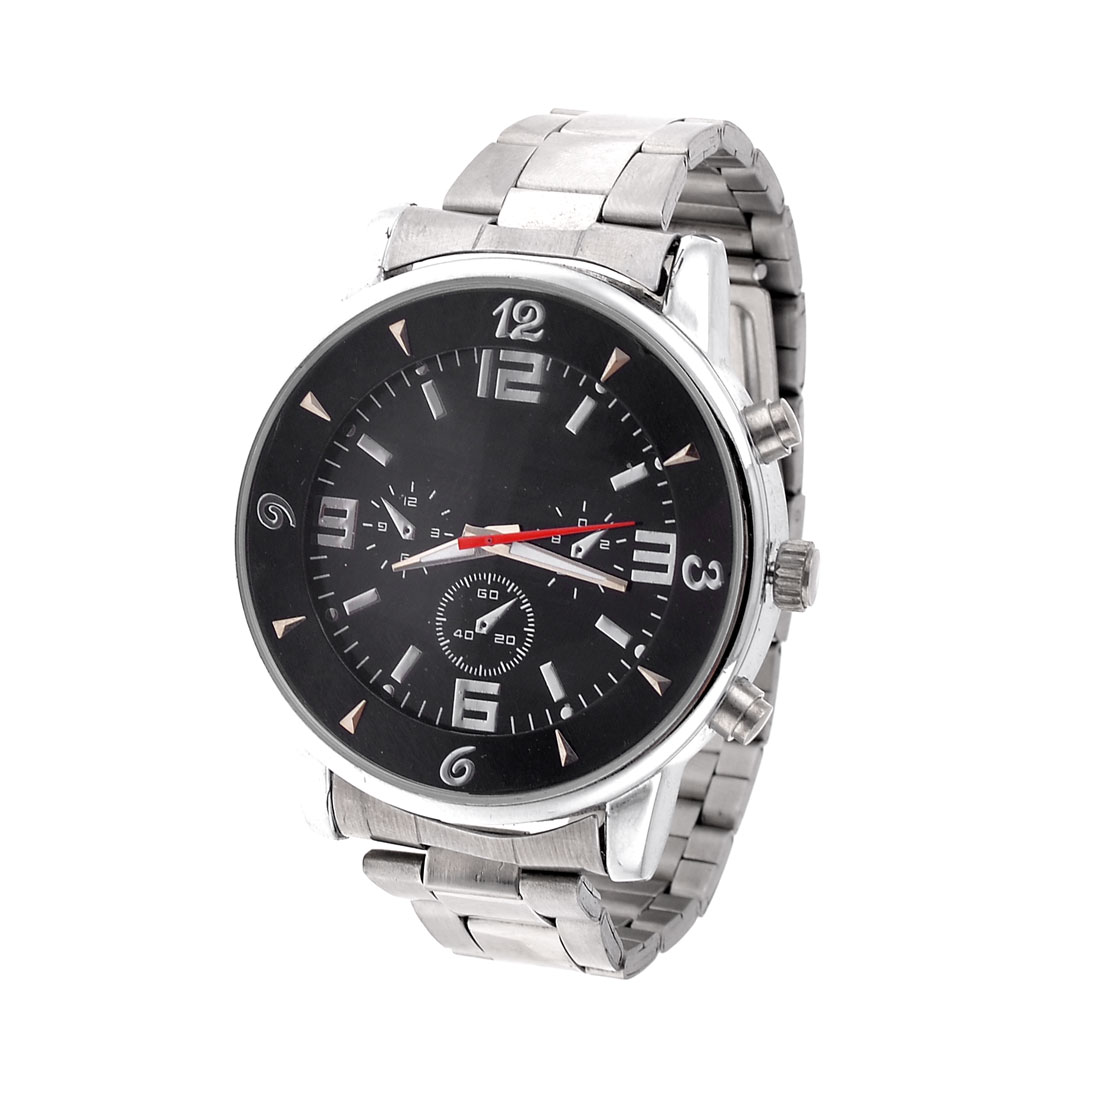 Black Dial Plate Three Side Knobs Stainless Steel Back Watch for Men